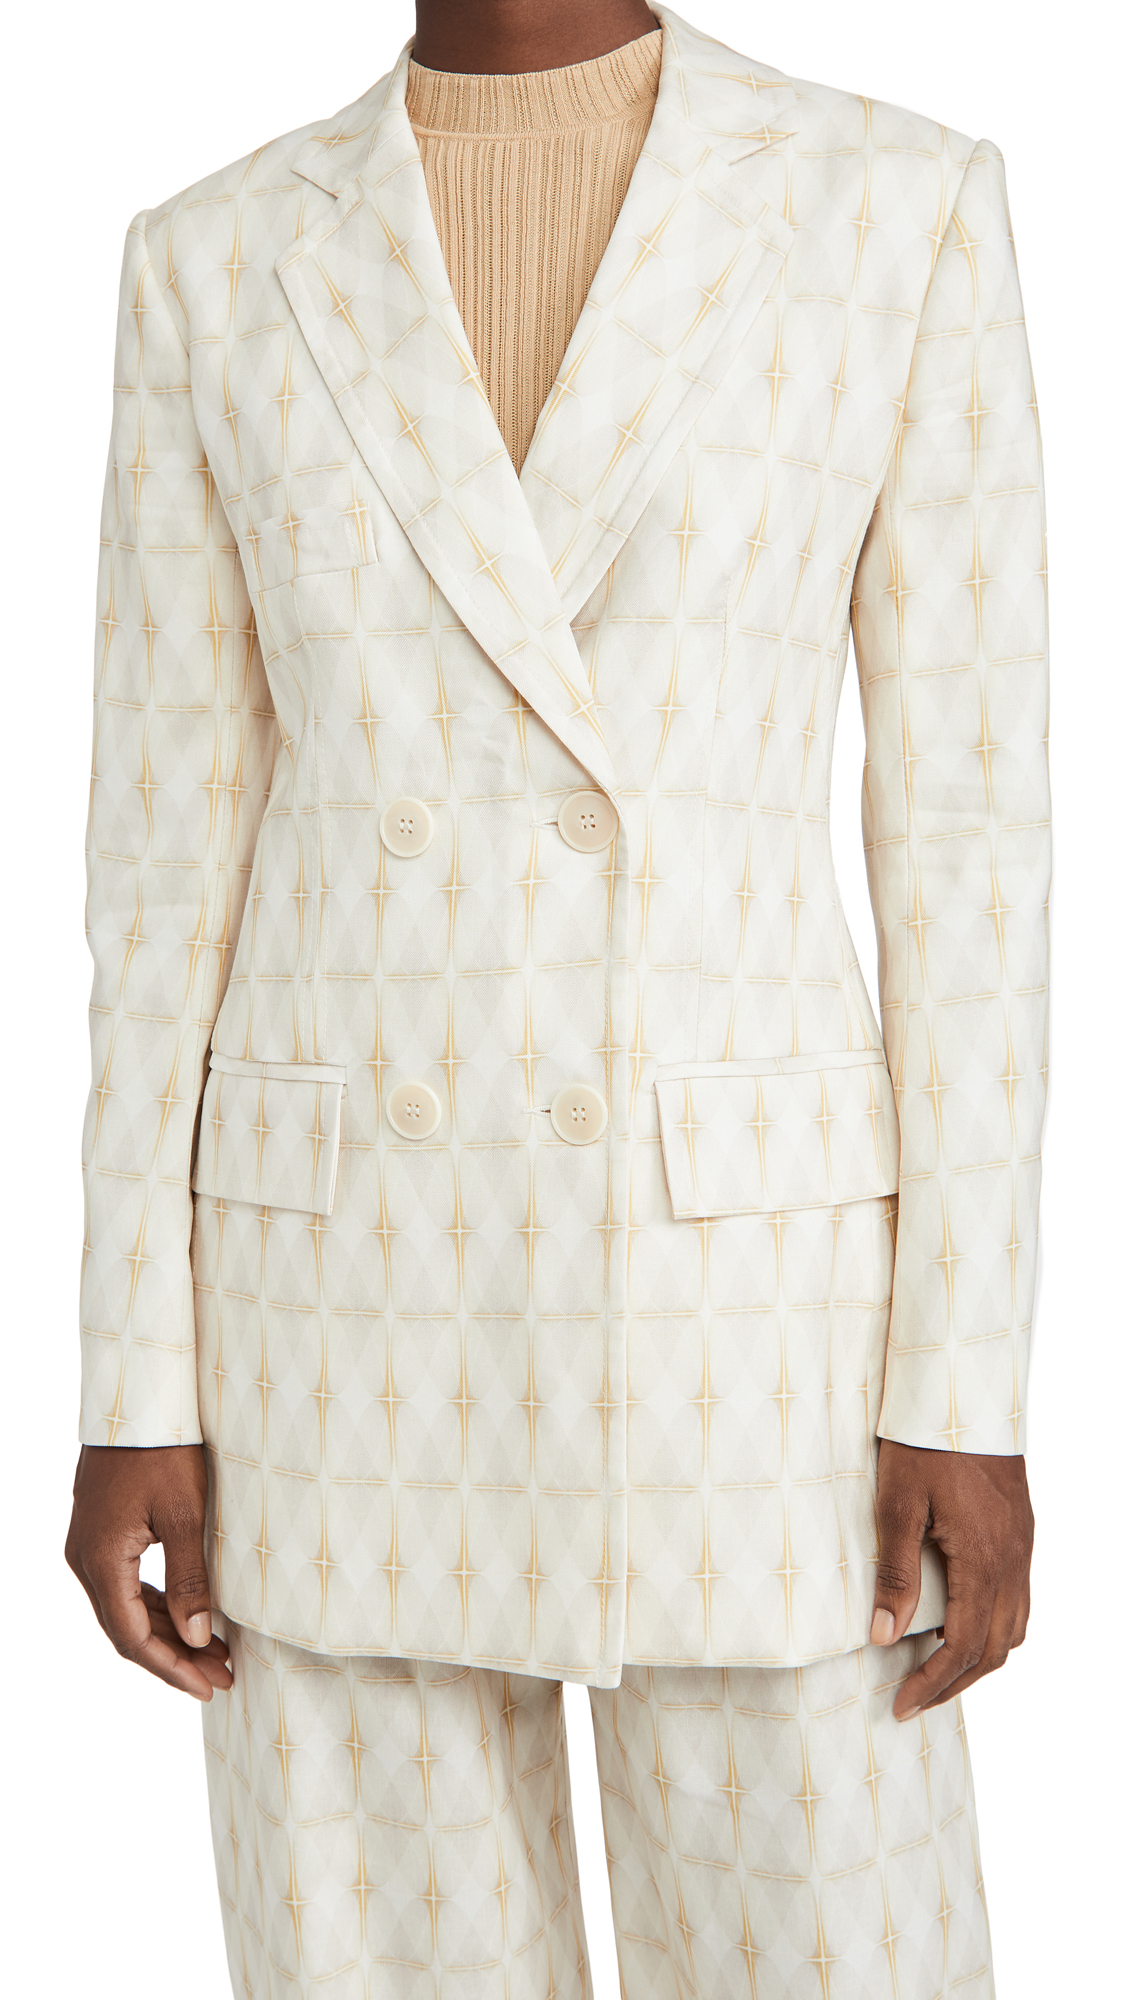 Manning Cartell Australia Diamond Standard Tailored Blazer